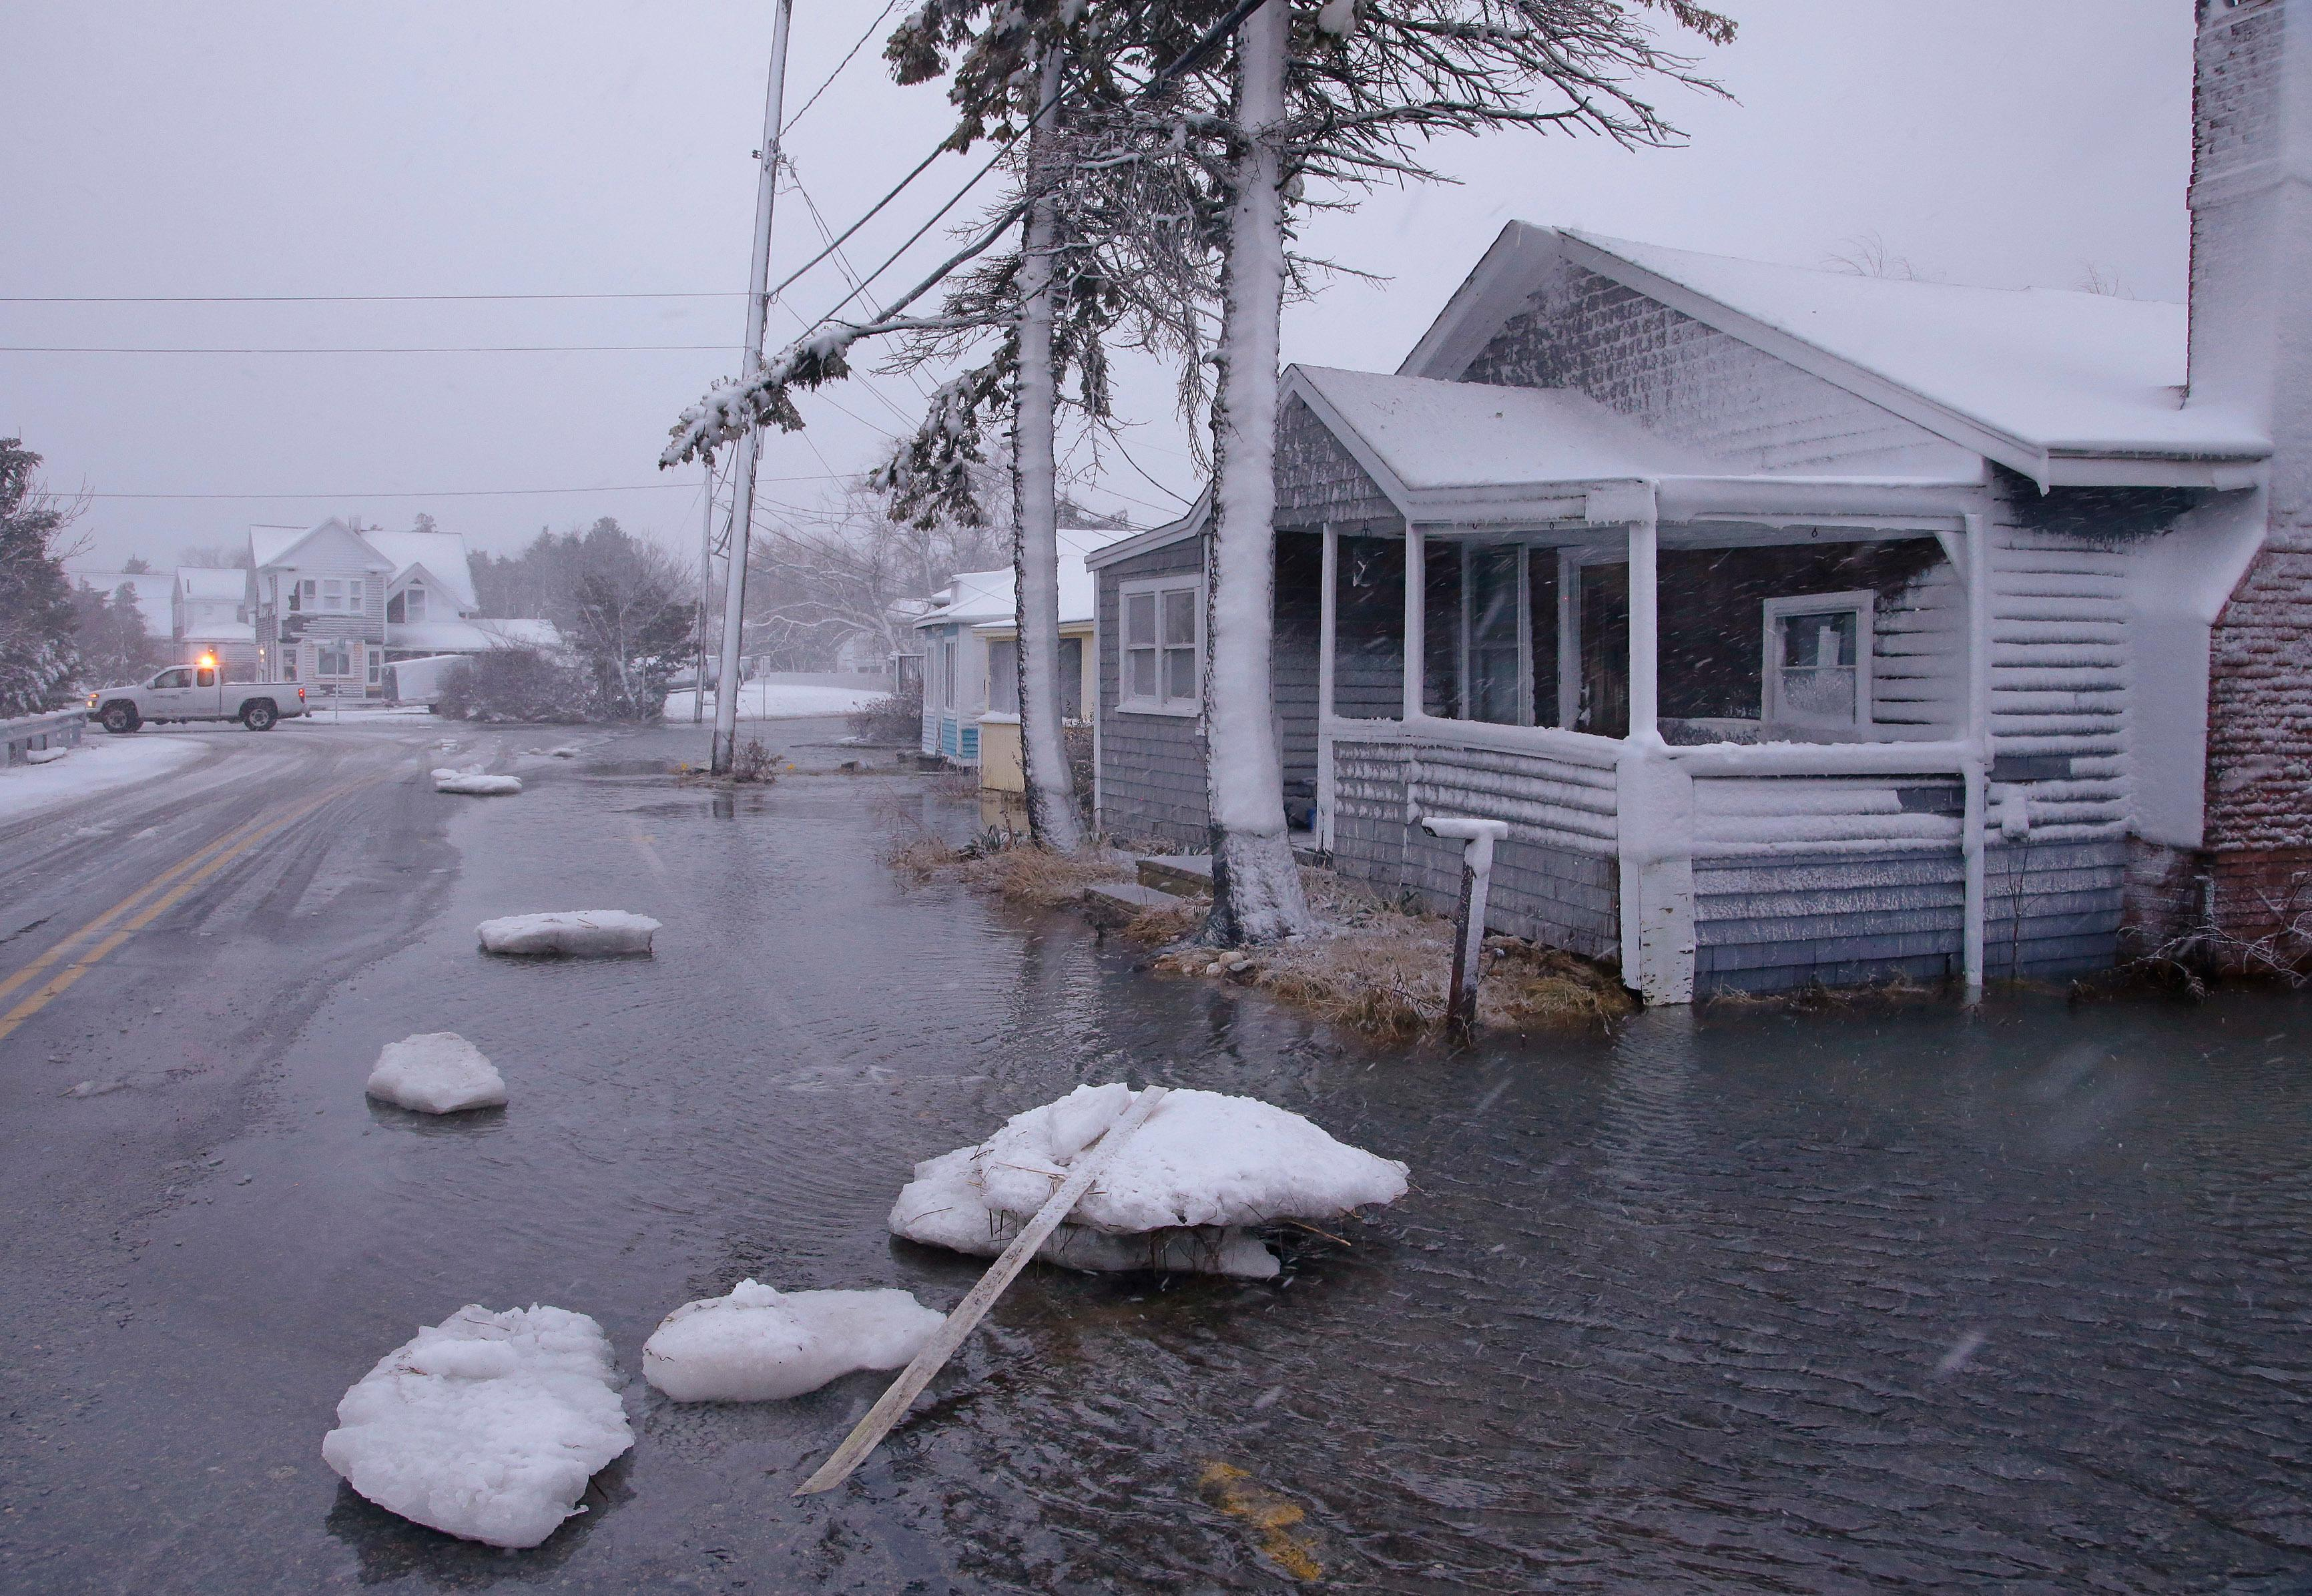 Large chunks of sea ice strewn Ferry Street in front of a flooded house as a utilities truck passes through a nearby intersection Thursday, Jan. 4, 2018, in Marshfield, Mass. The National Weather Service has issued a blizzard warning for Thursday that extends from eastern Long Island north to coastal New Hampshire and Maine. Most of the rest of southern New England is under a winter storm watch. (AP Photo/Stephan Savoia)